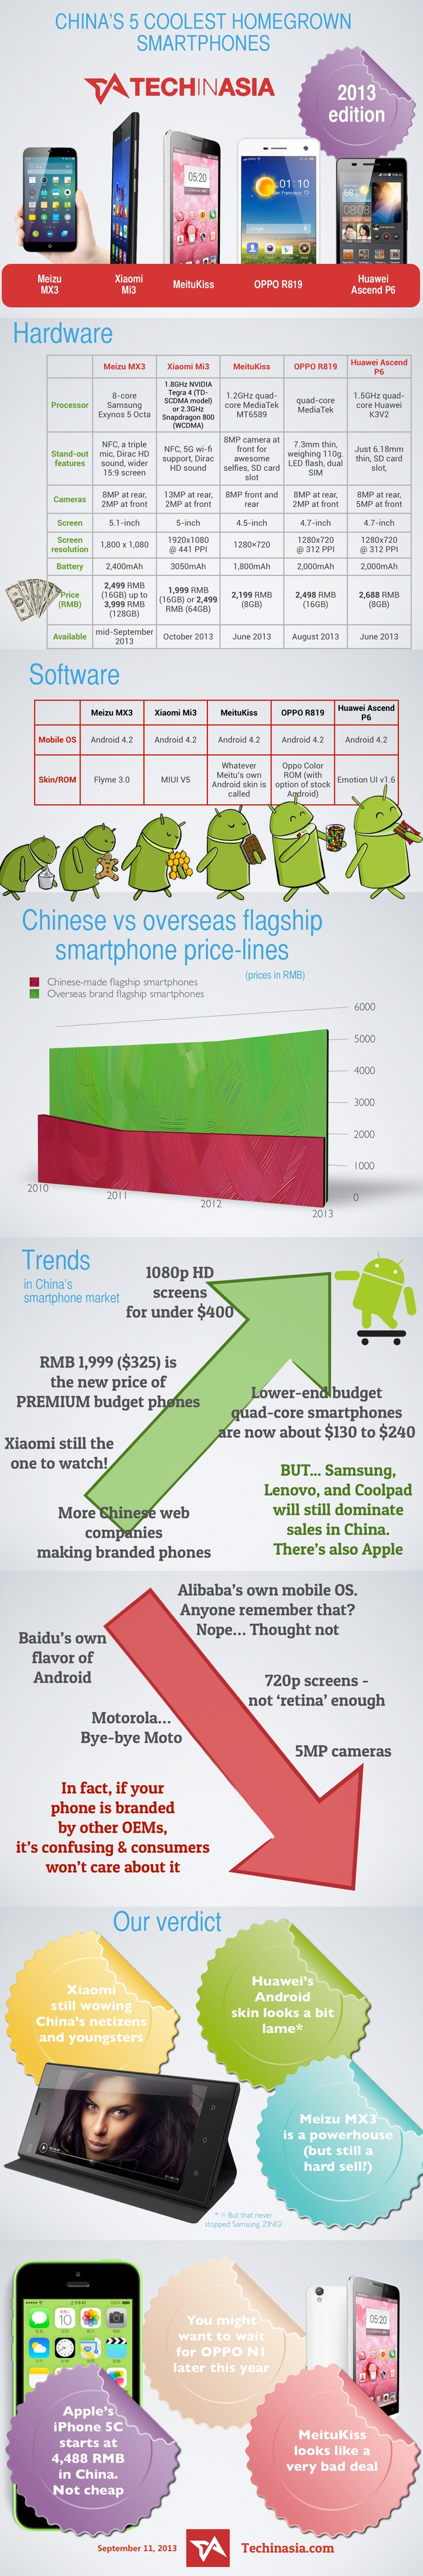 20. Chinas-coolest-homegrown-smartphones-2013-infographic